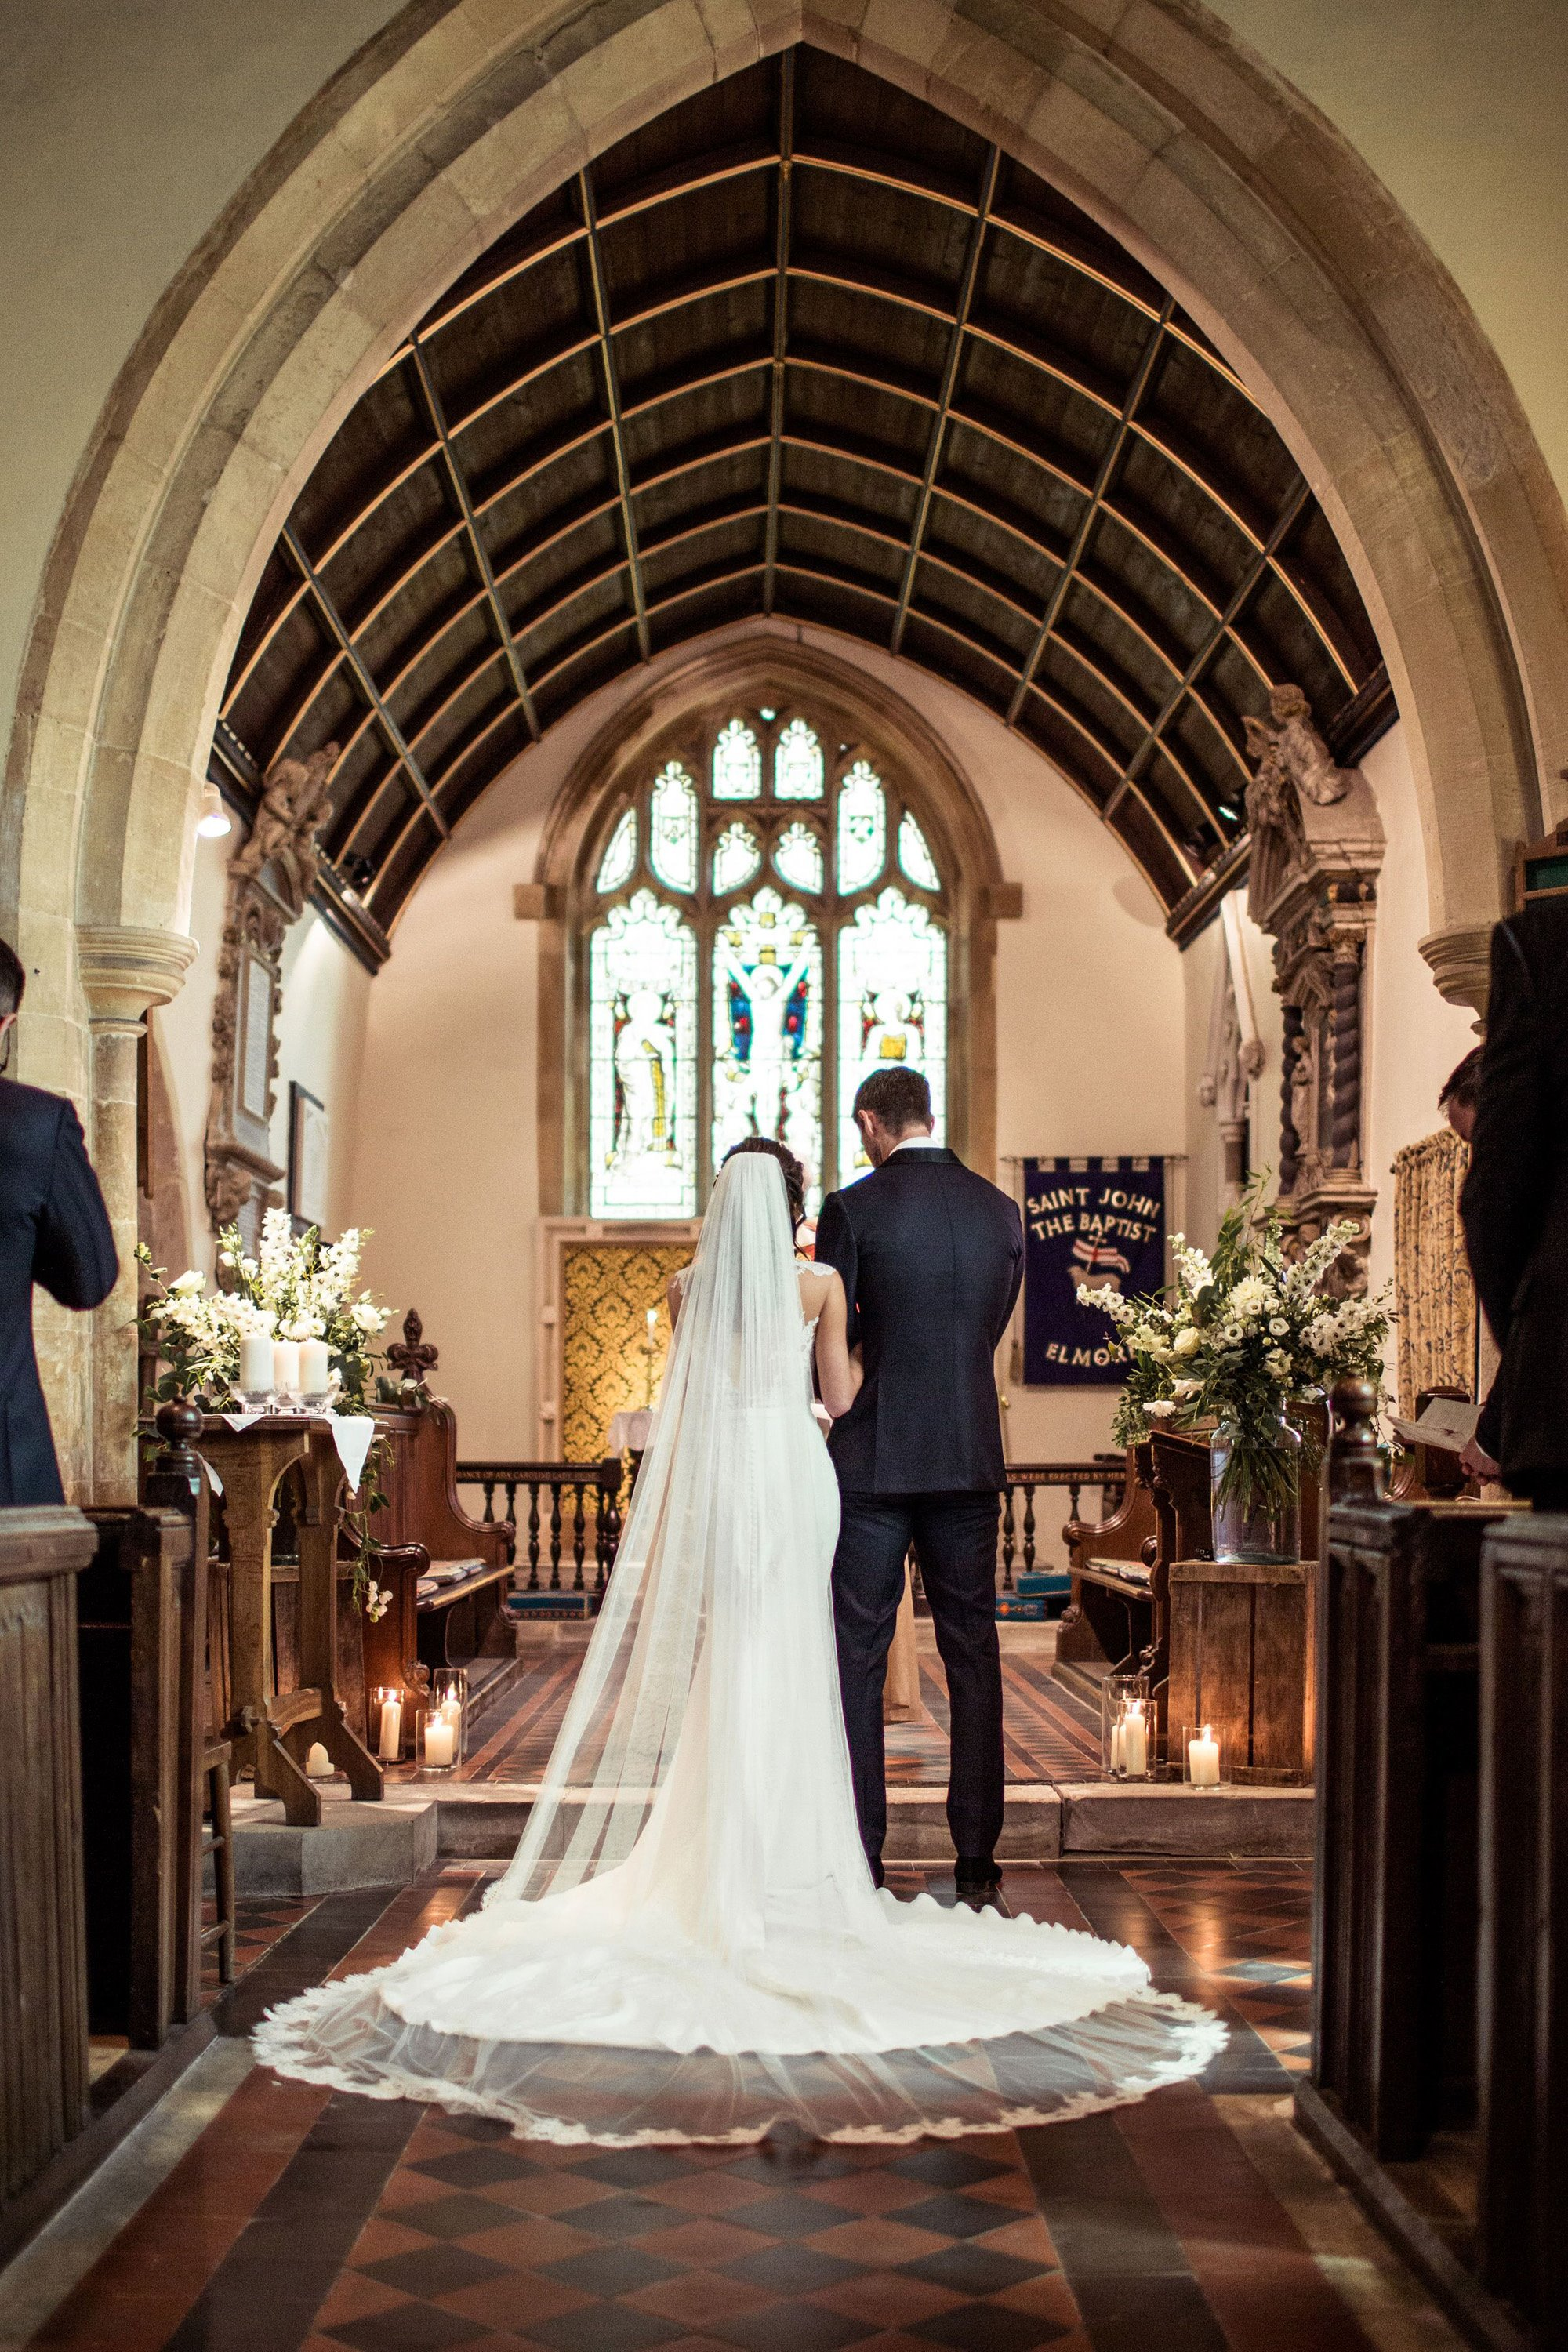 Wedding vows at a beautiful 15th century Elmore church in gloucestershire